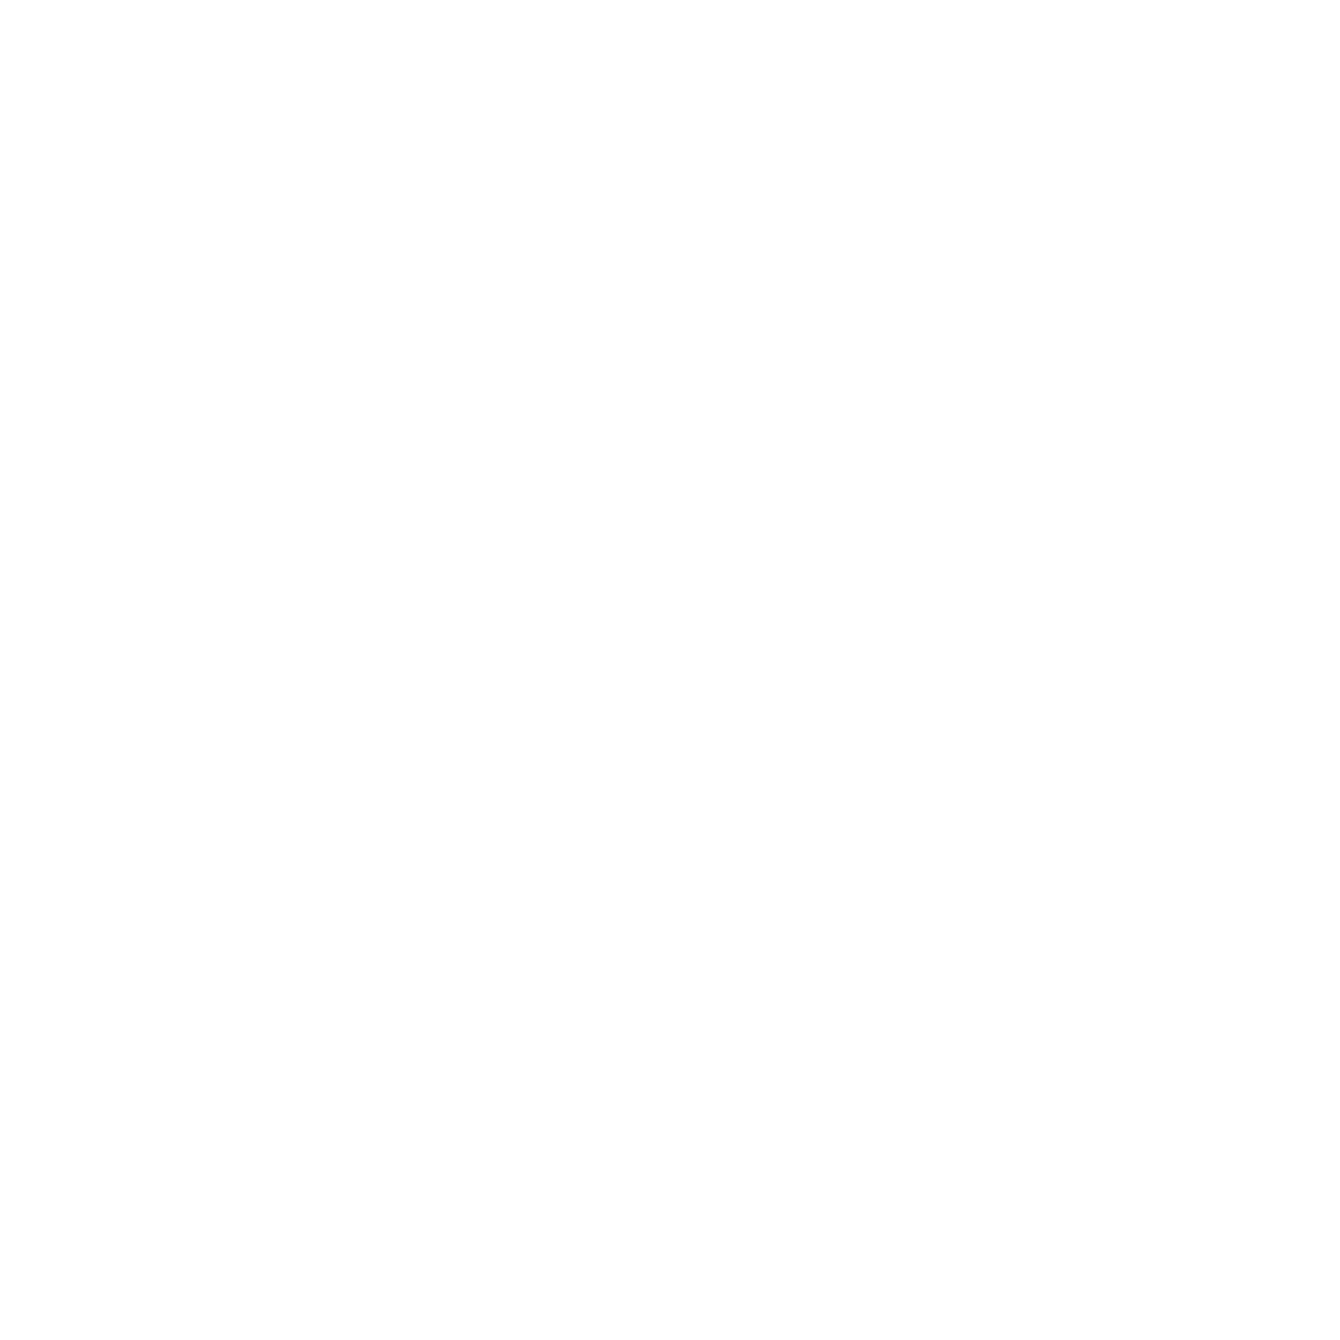 Royal Mountain Records